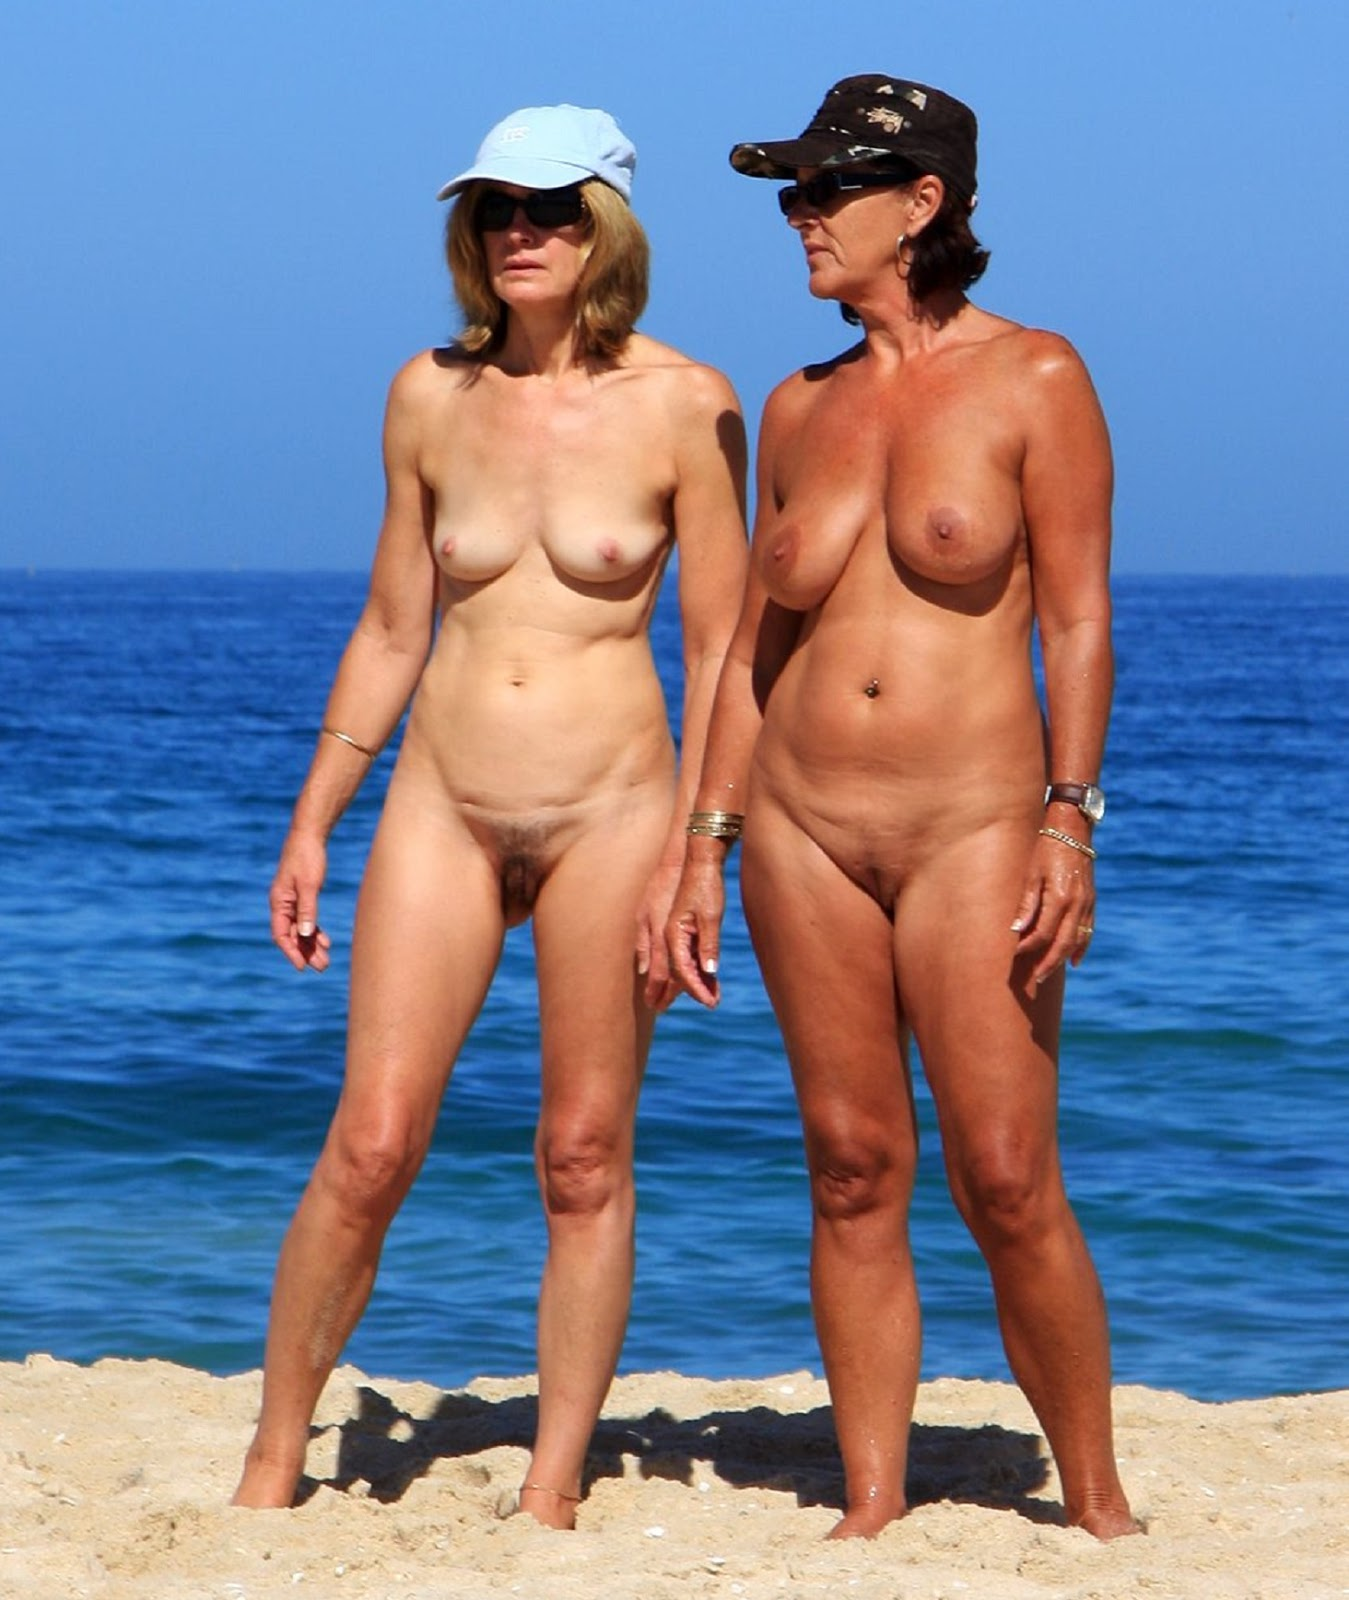 Public Nudity Project Nude Beach Olympics 2009 -8261